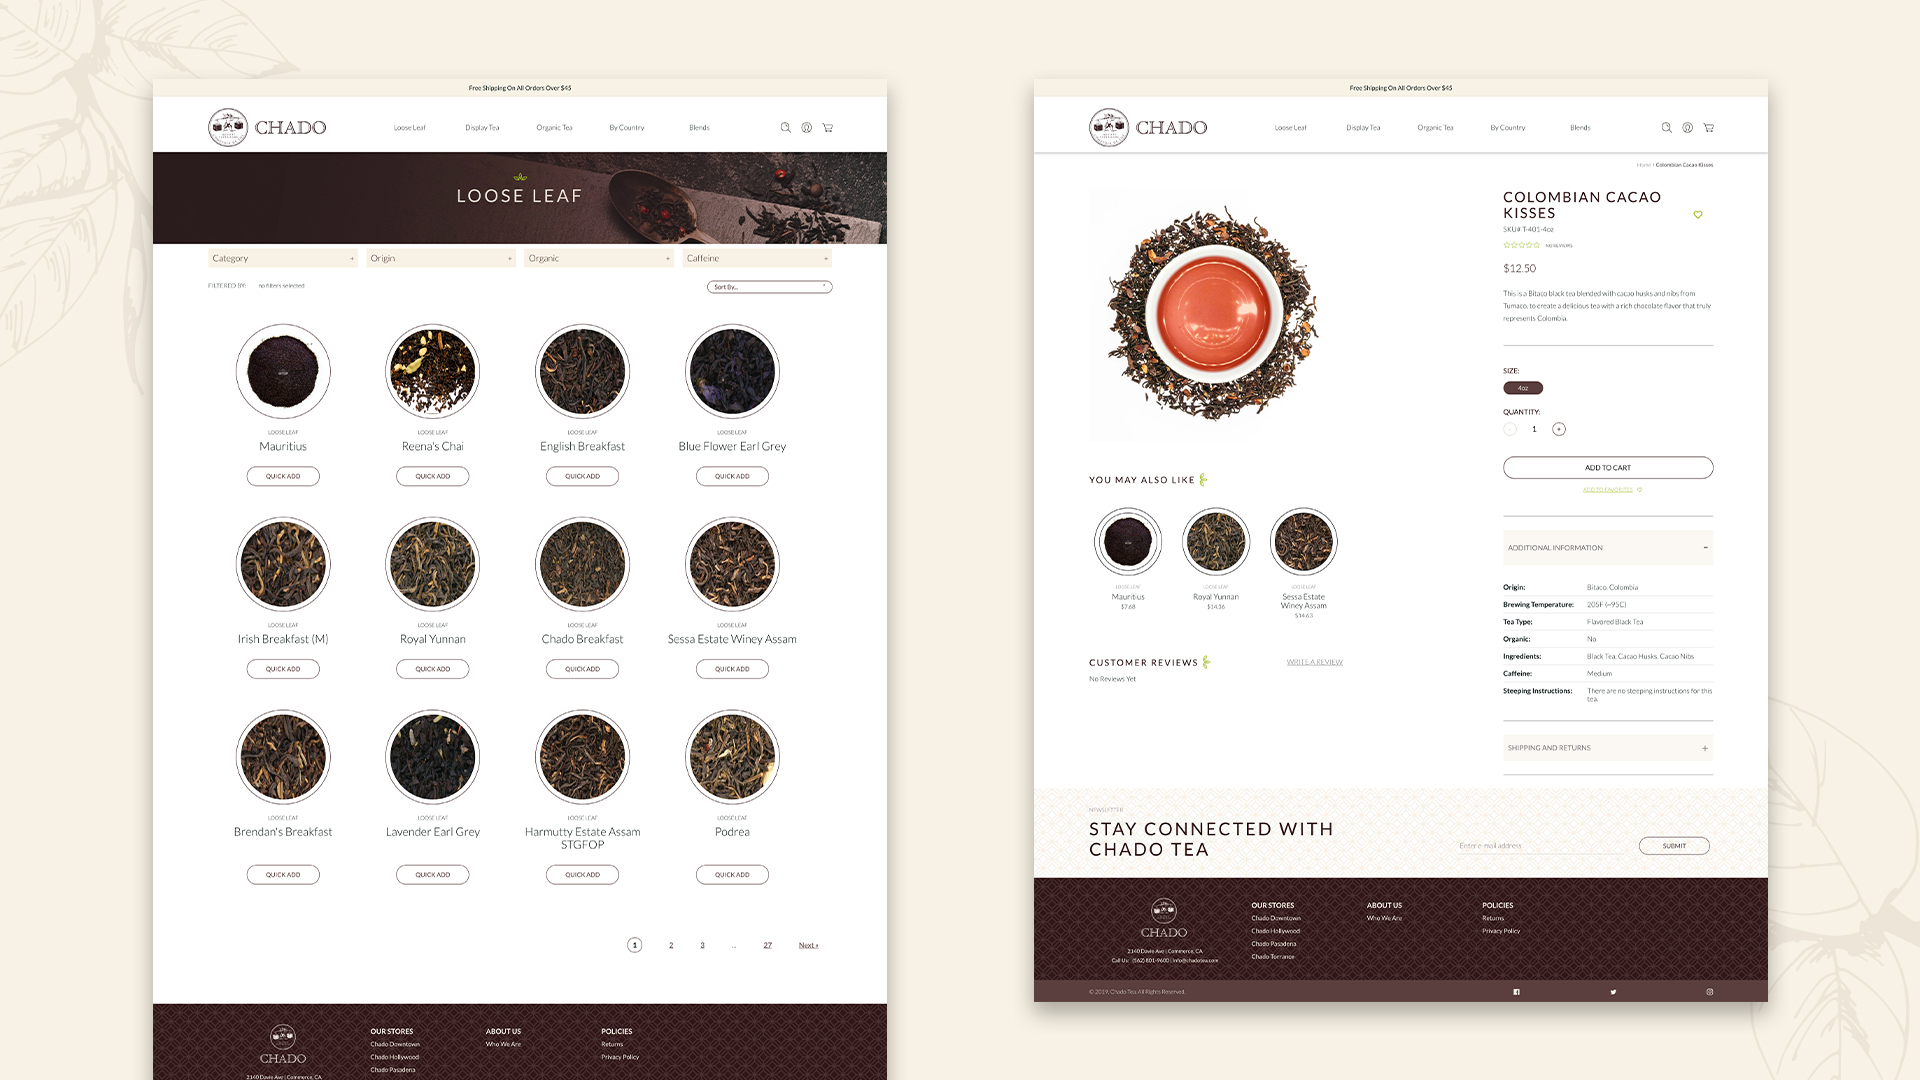 Chado Tea Collection Page and Product Page Layout